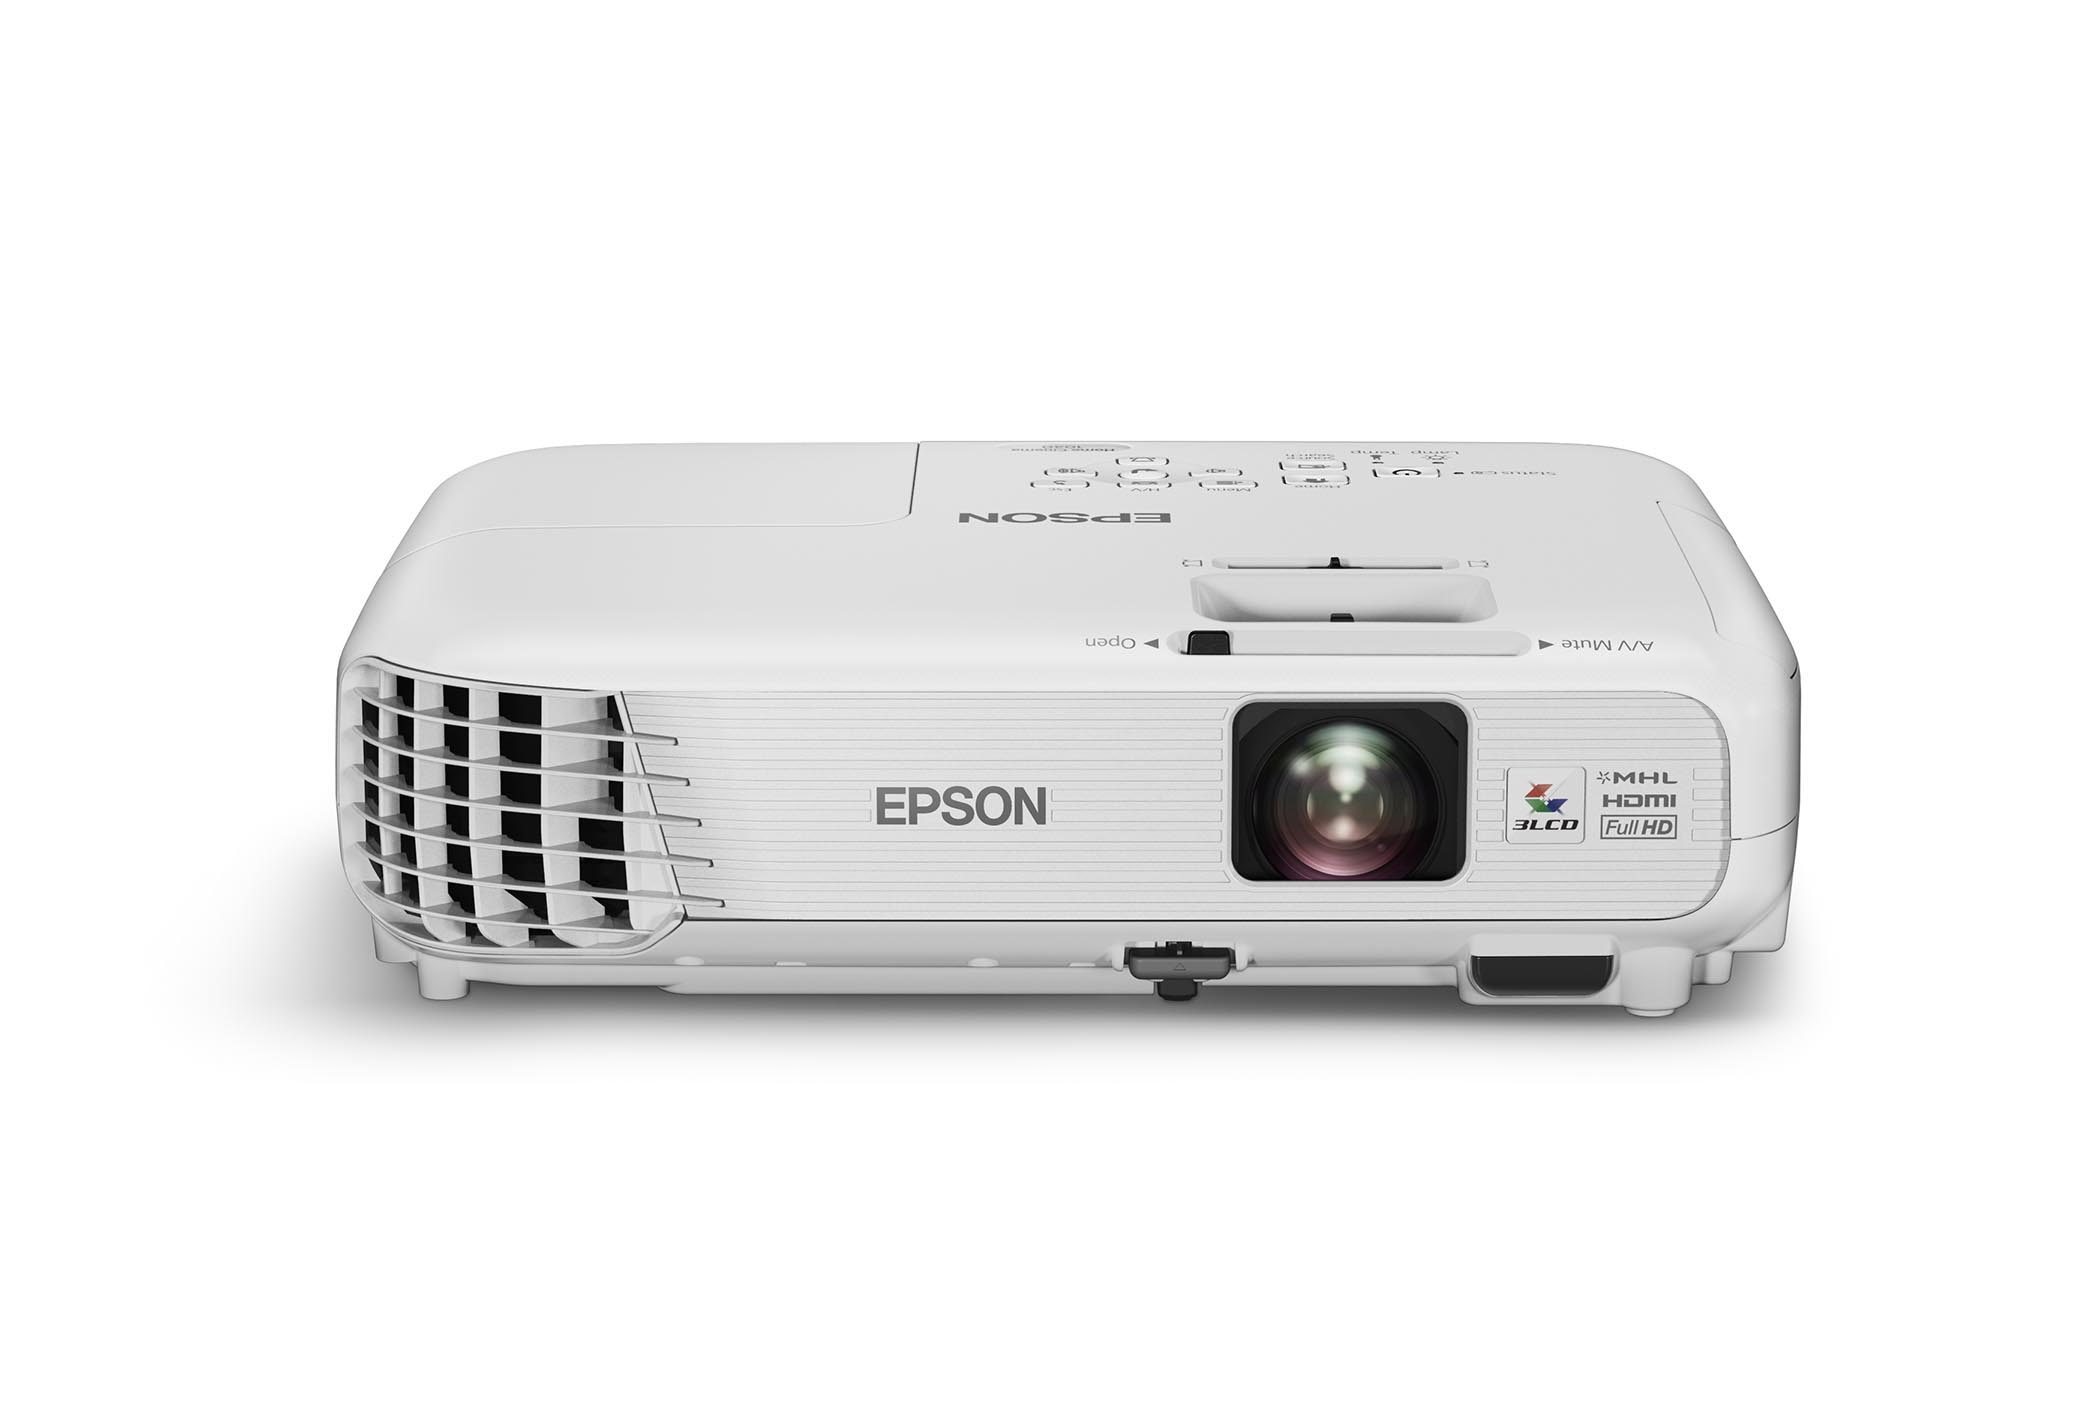 Epson powerlite home cinema 1040 1080p 3lcd projector 3000 for Small projector with high lumens